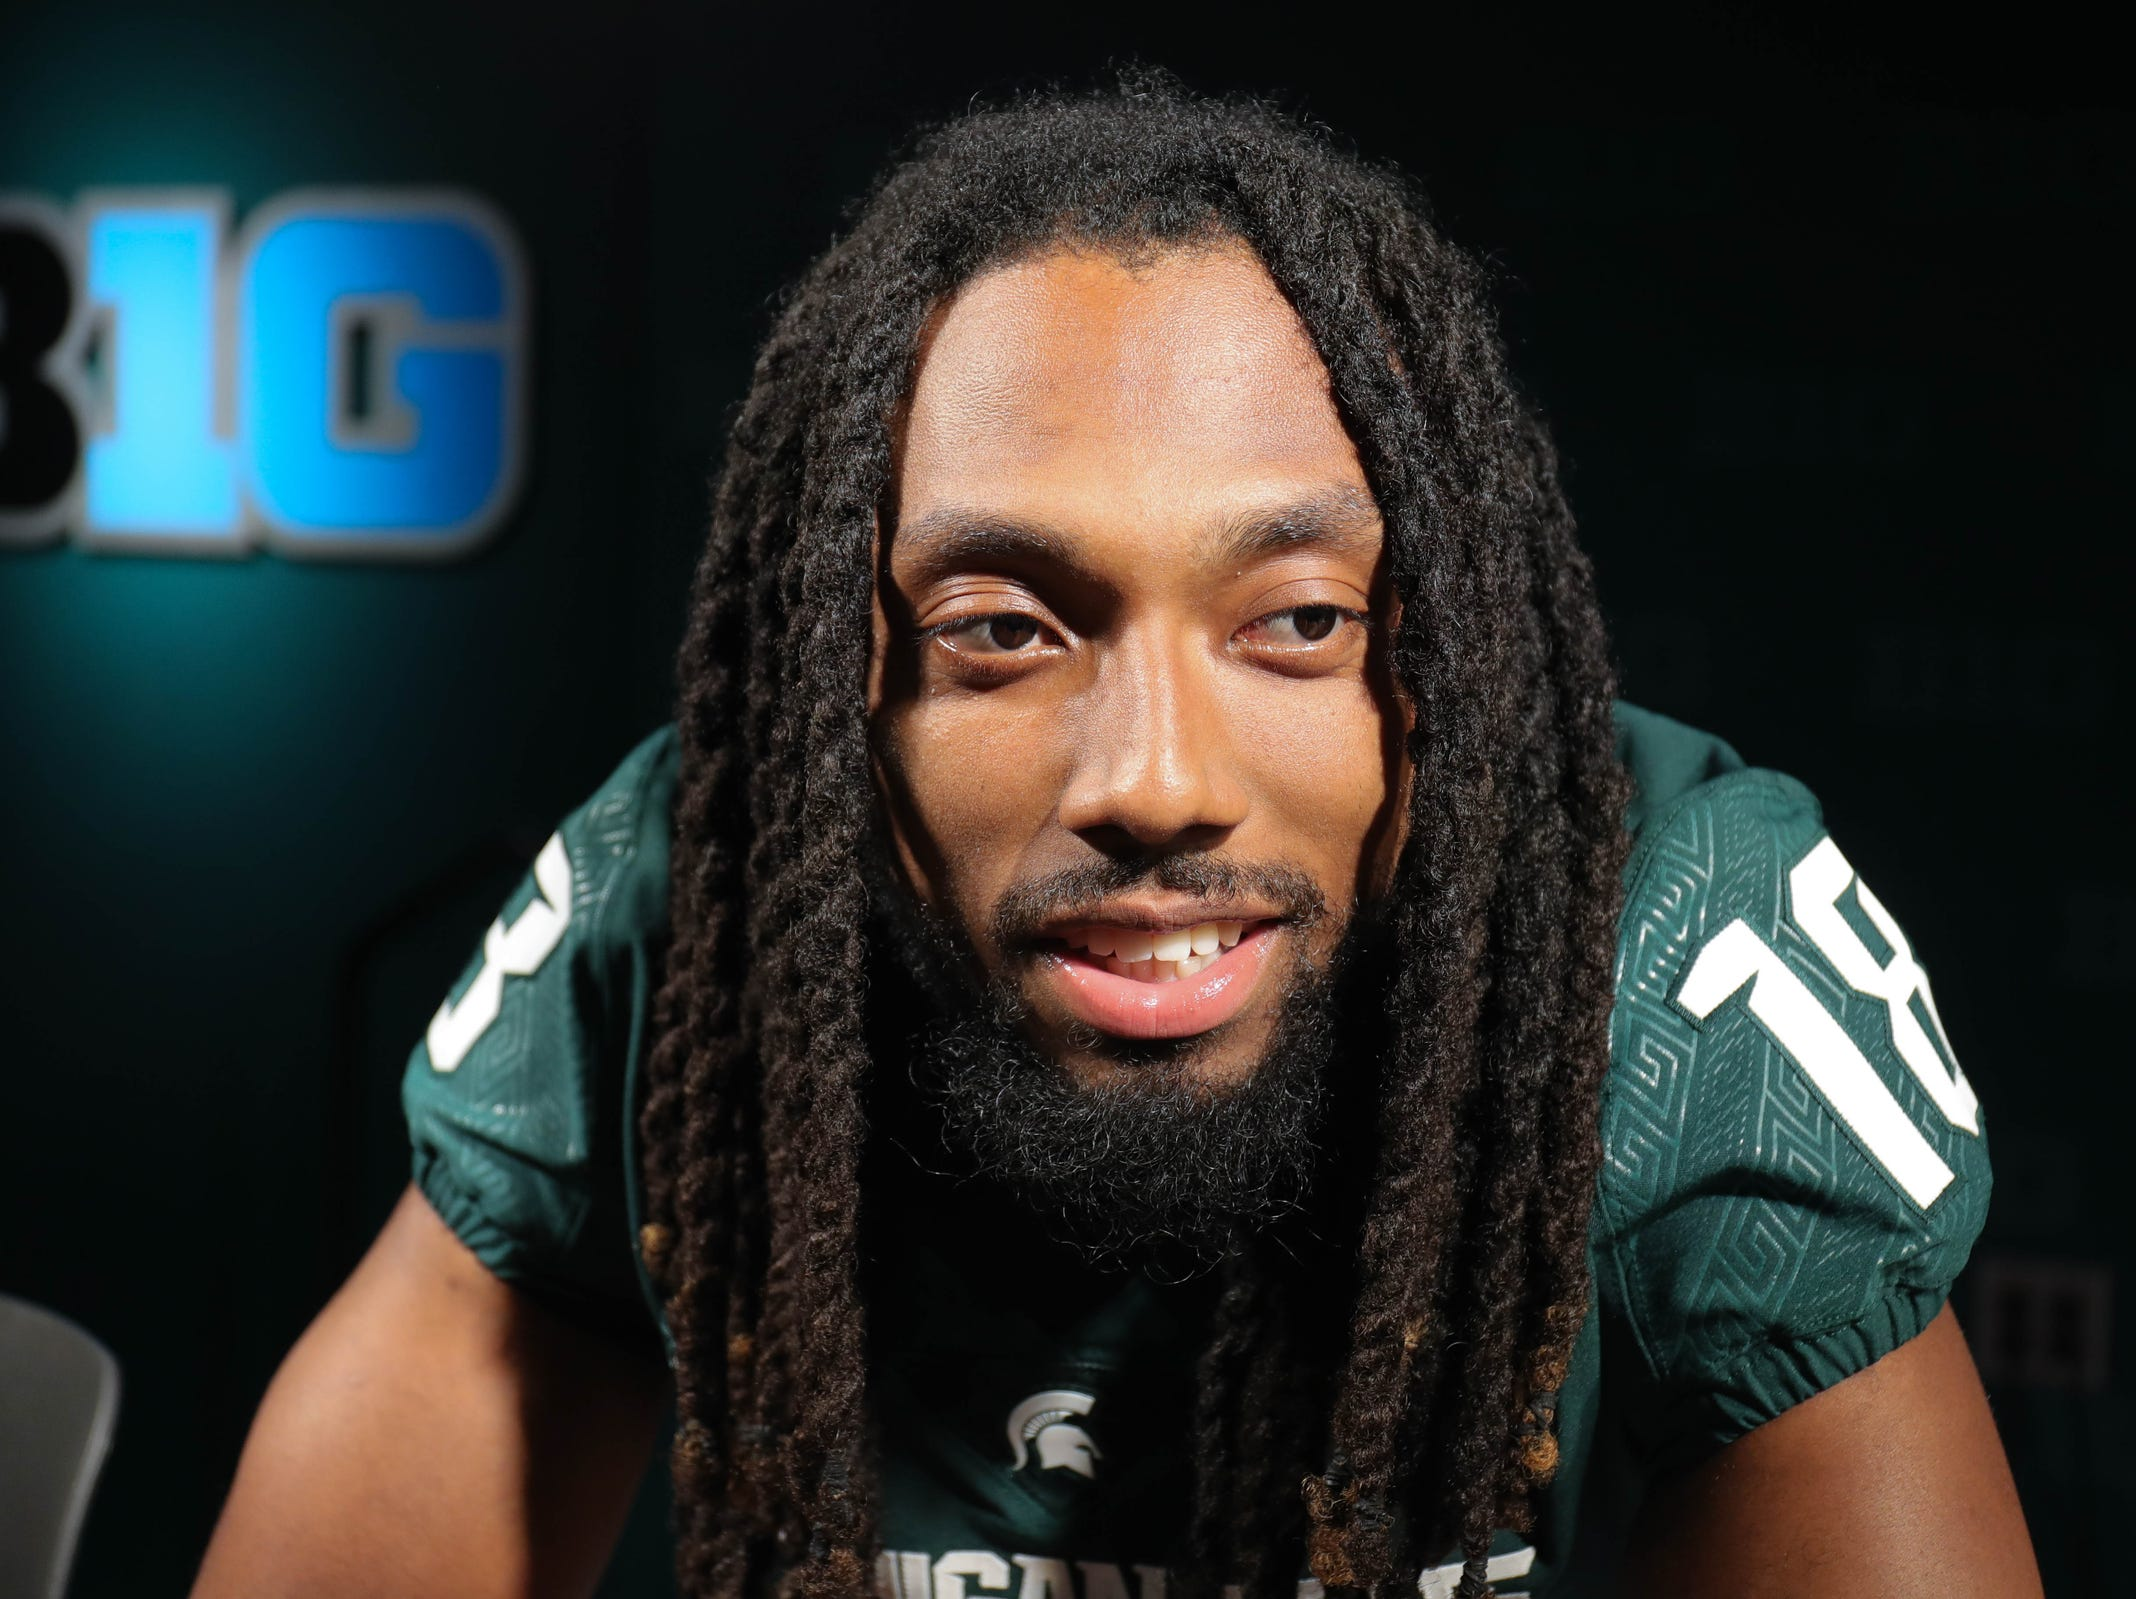 Michigan State receiver Felton Davis III talks with reporters about the upcoming season on Monday, Aug. 6, 2018, in East Lansing.